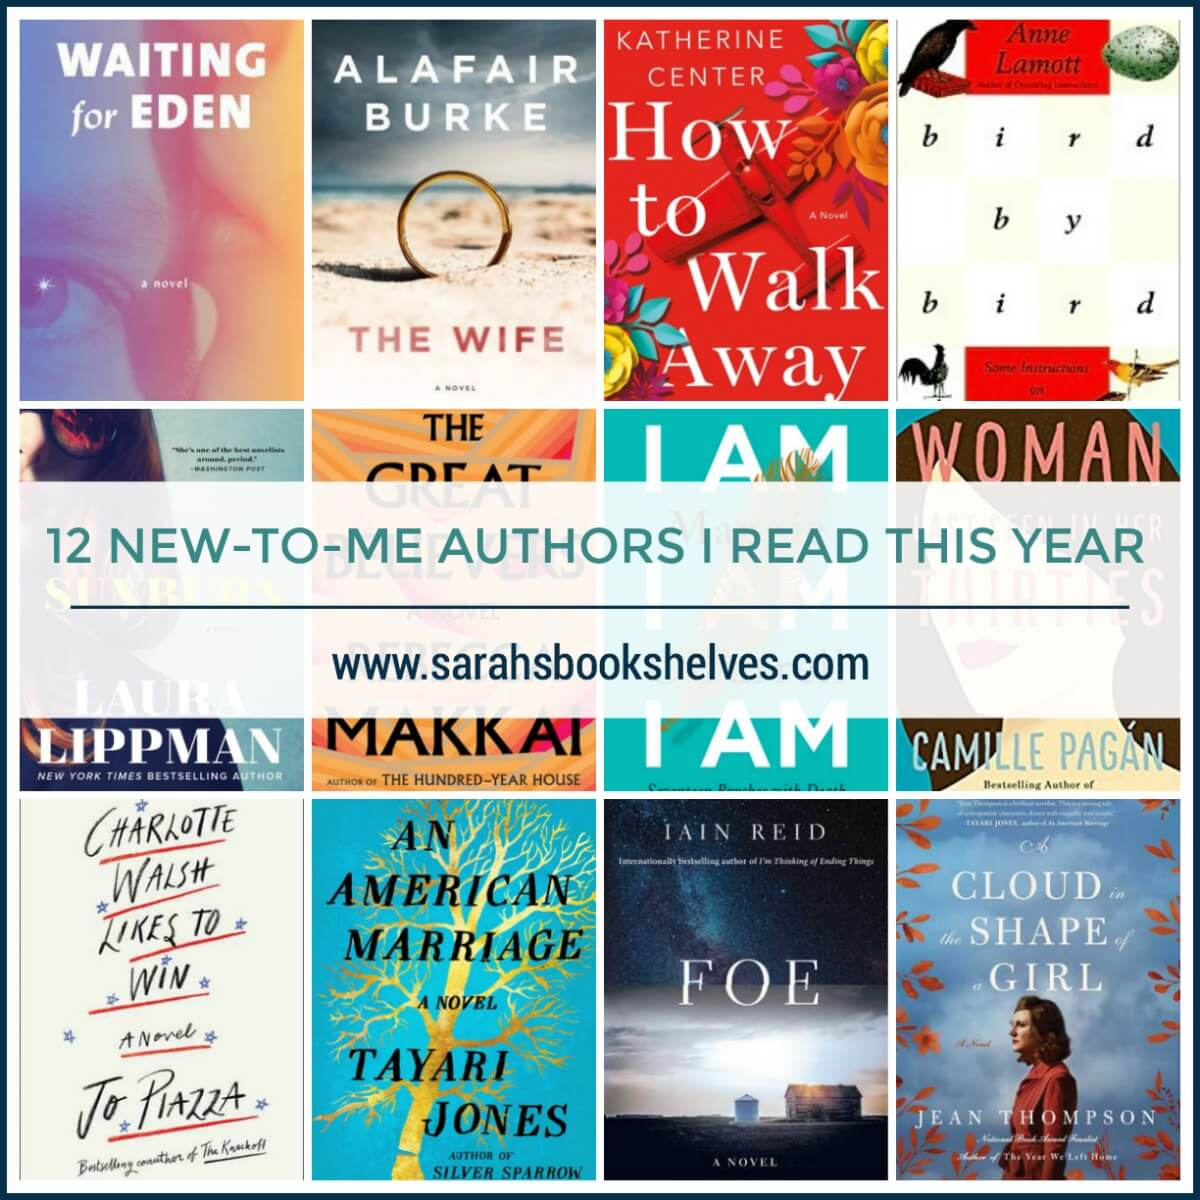 new-to-me authors